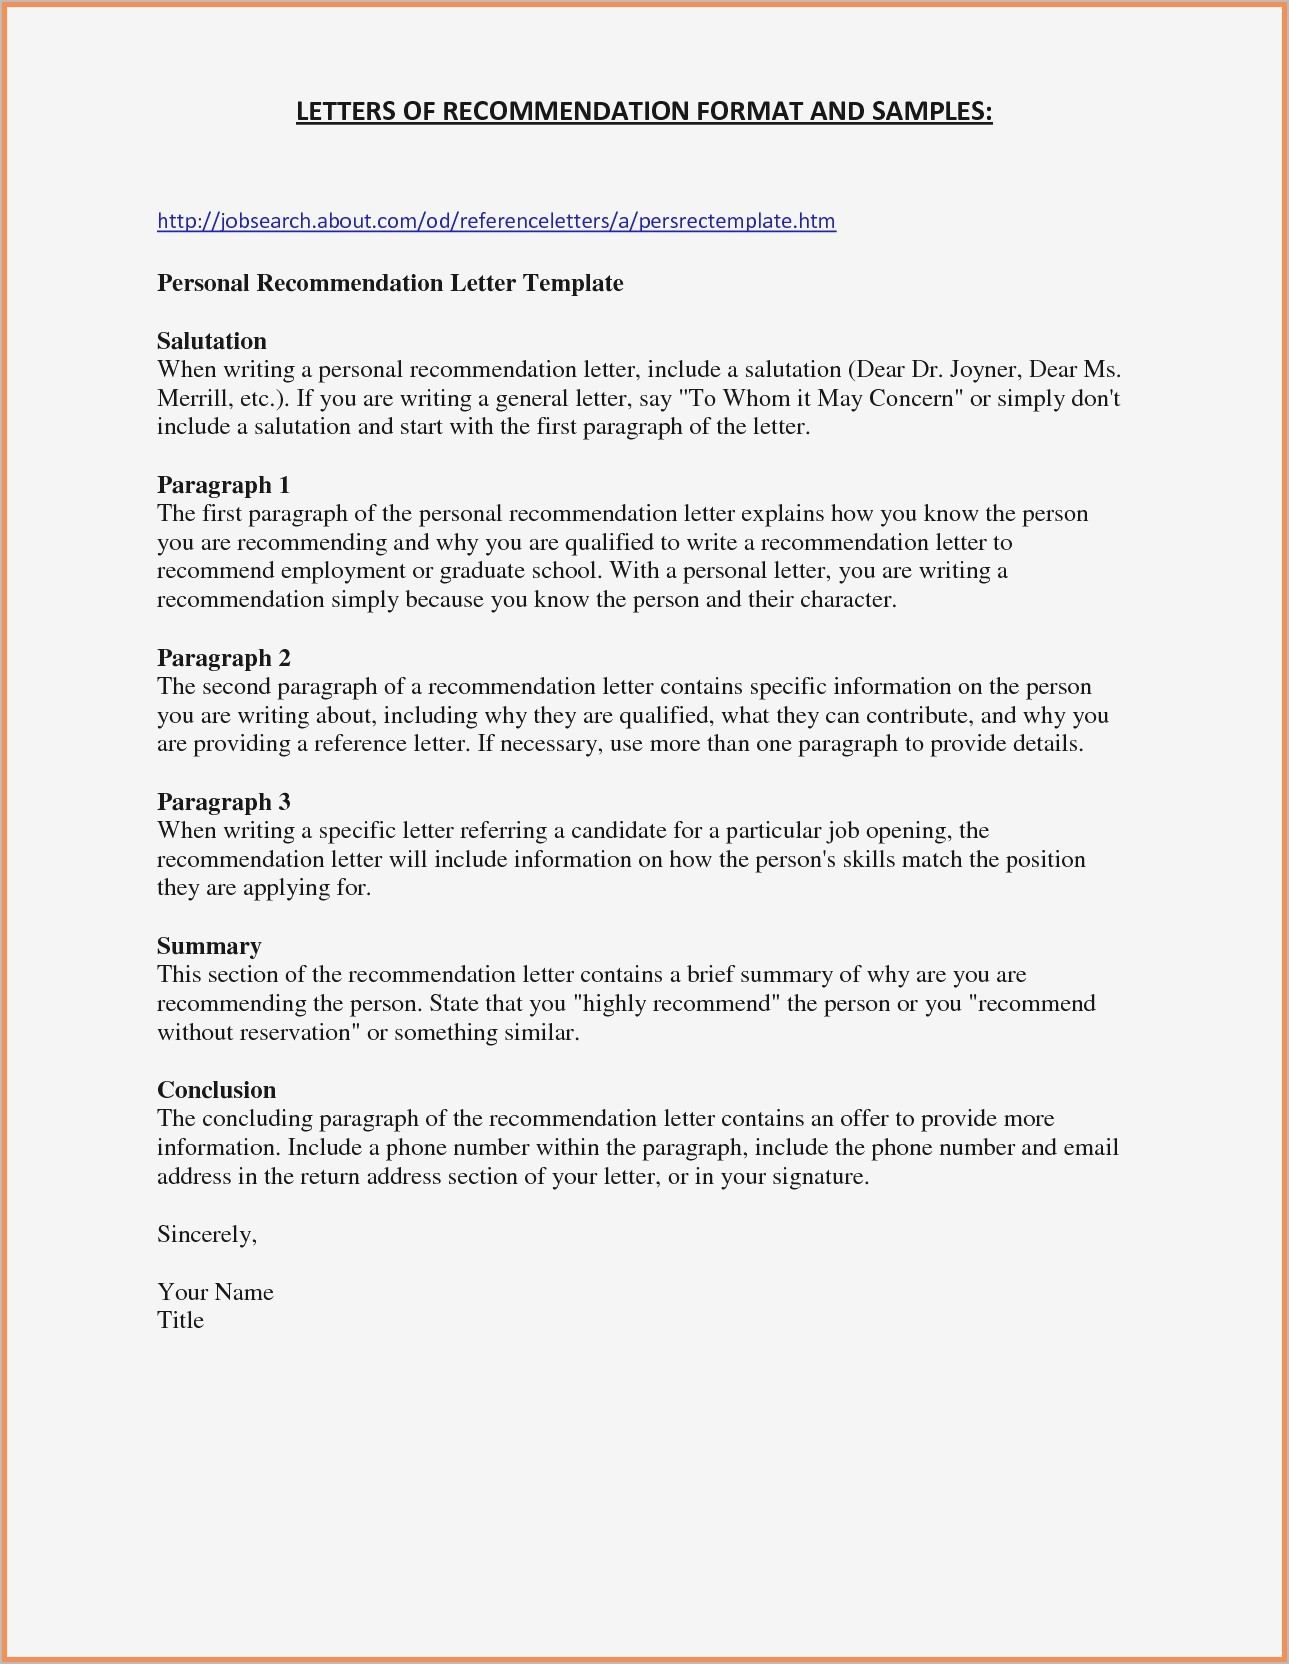 Letter Of Recommendation Template Pdf - Job Letter Re Mendation Template Best Free Letter Re Mendation